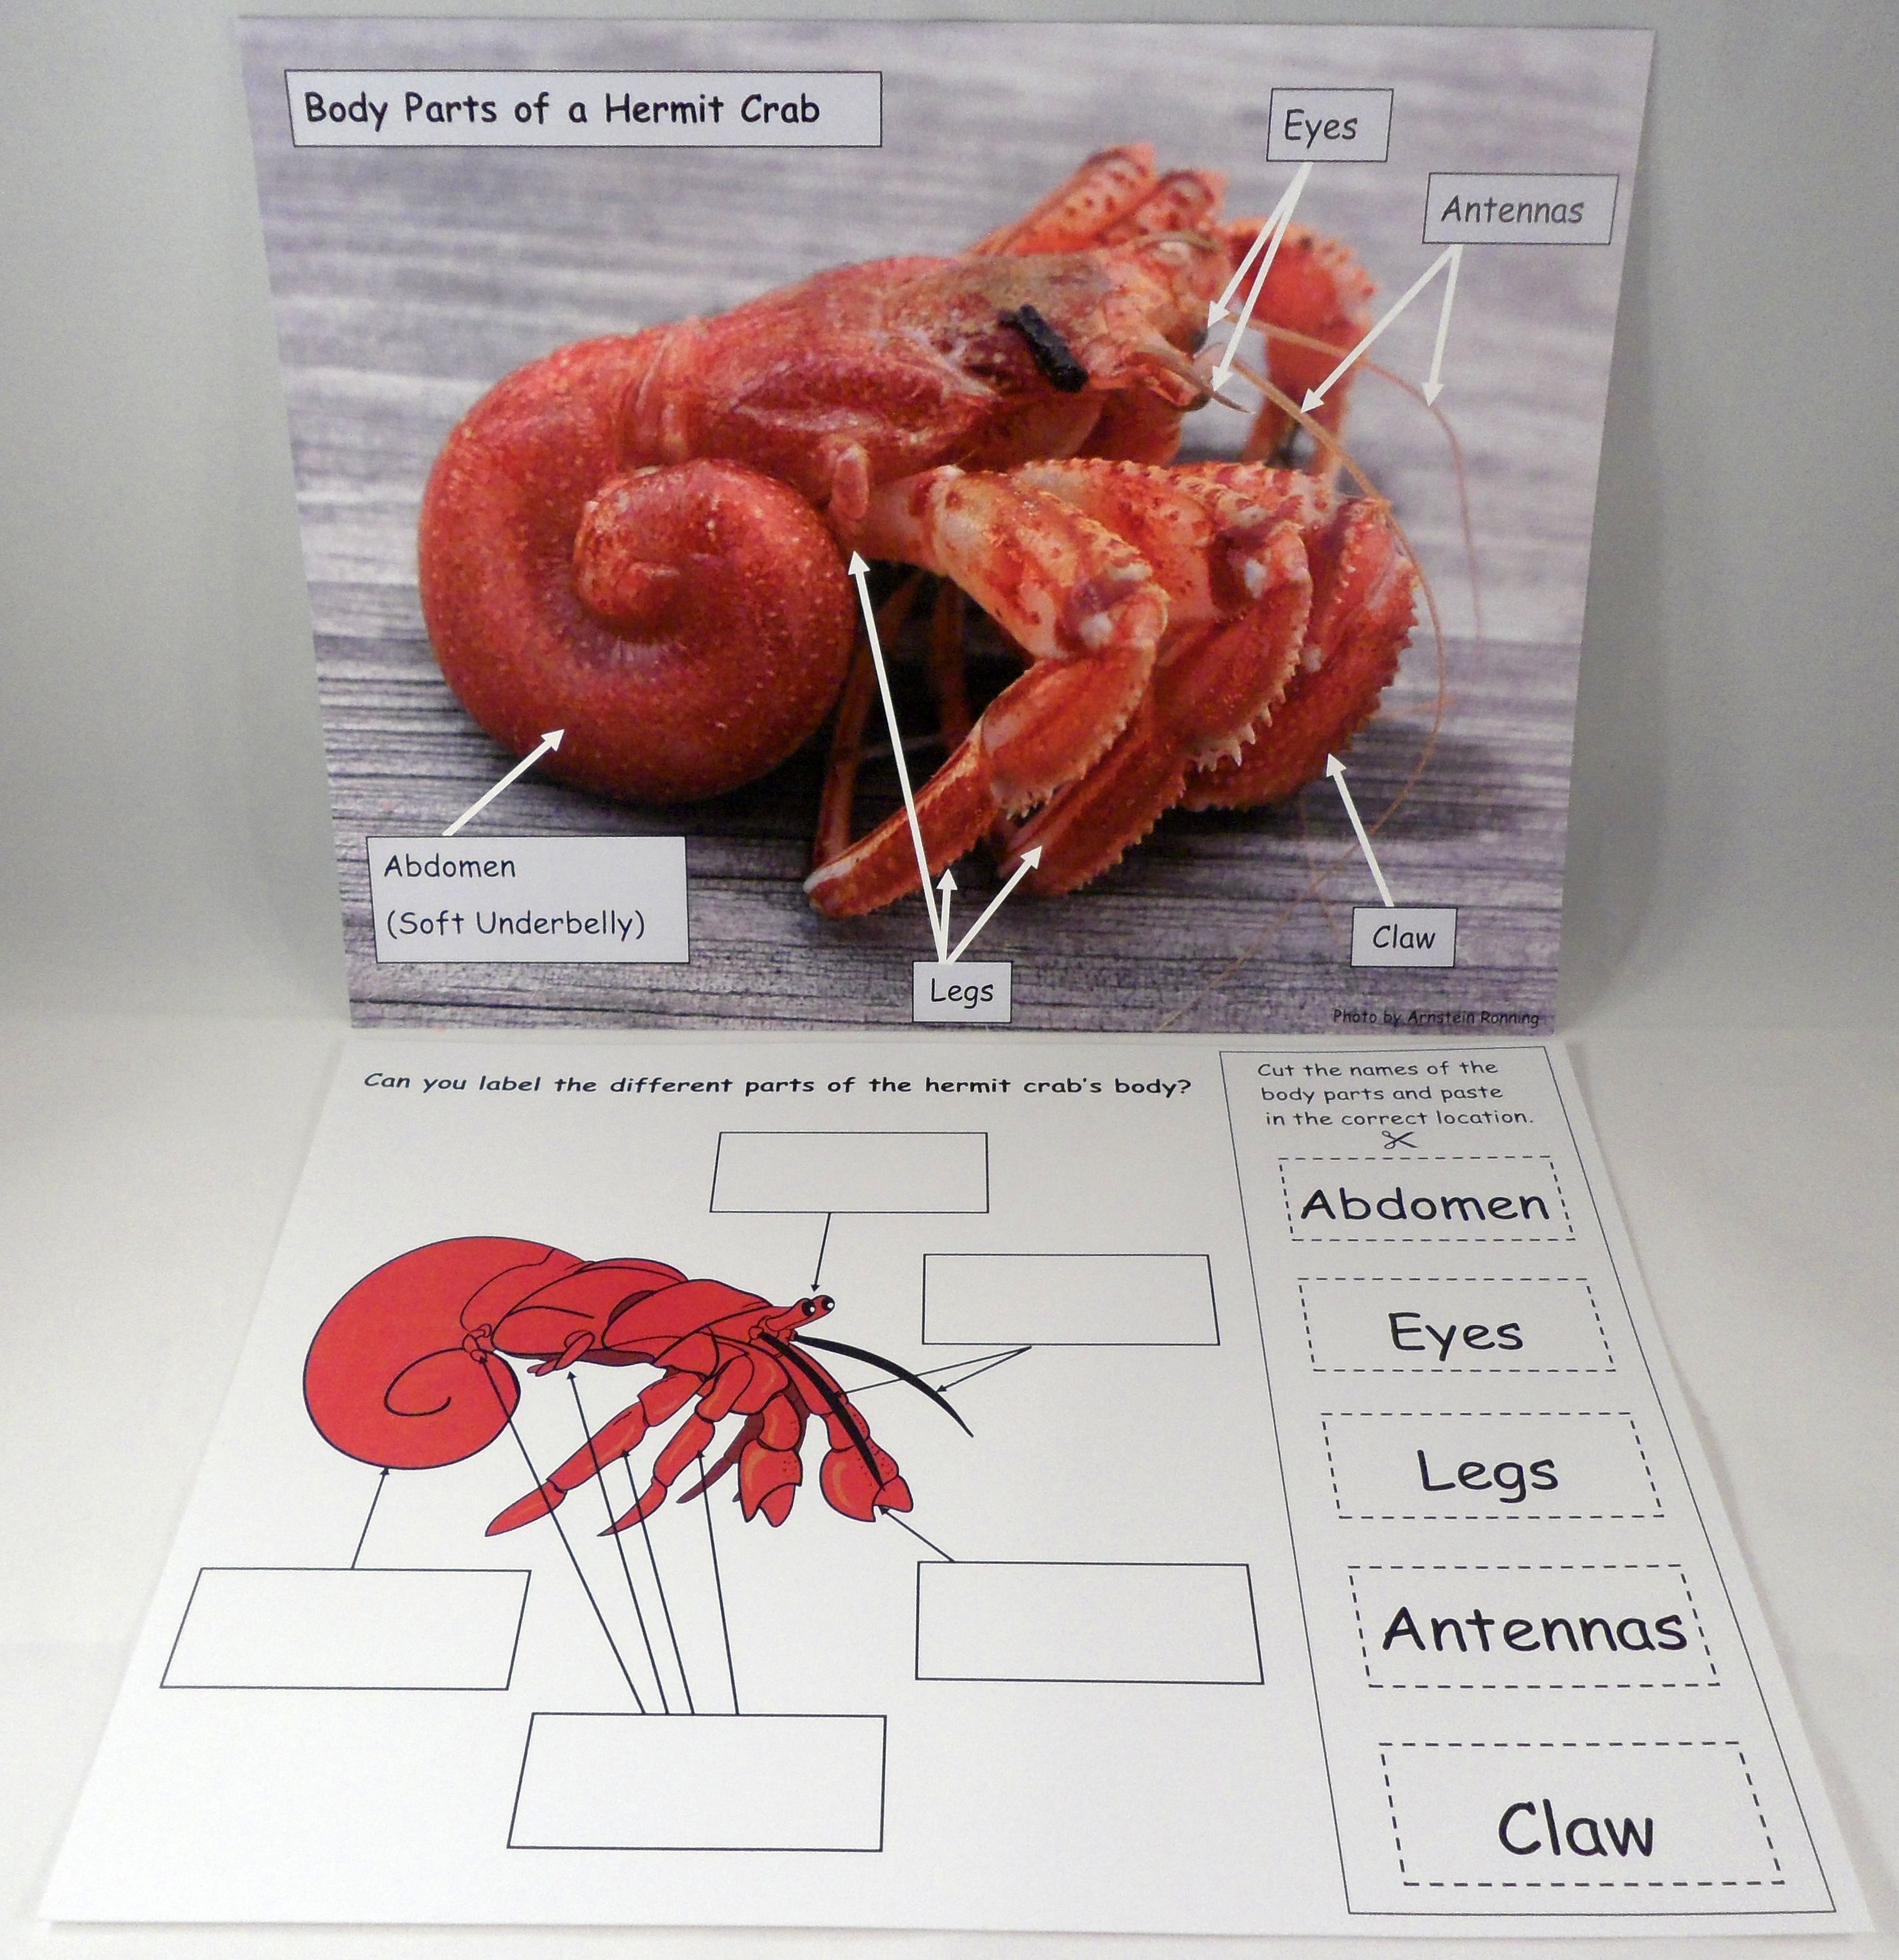 Hermit Crab Body Parts | A House for Hermit Crab by Eric Carle - Ivy ...